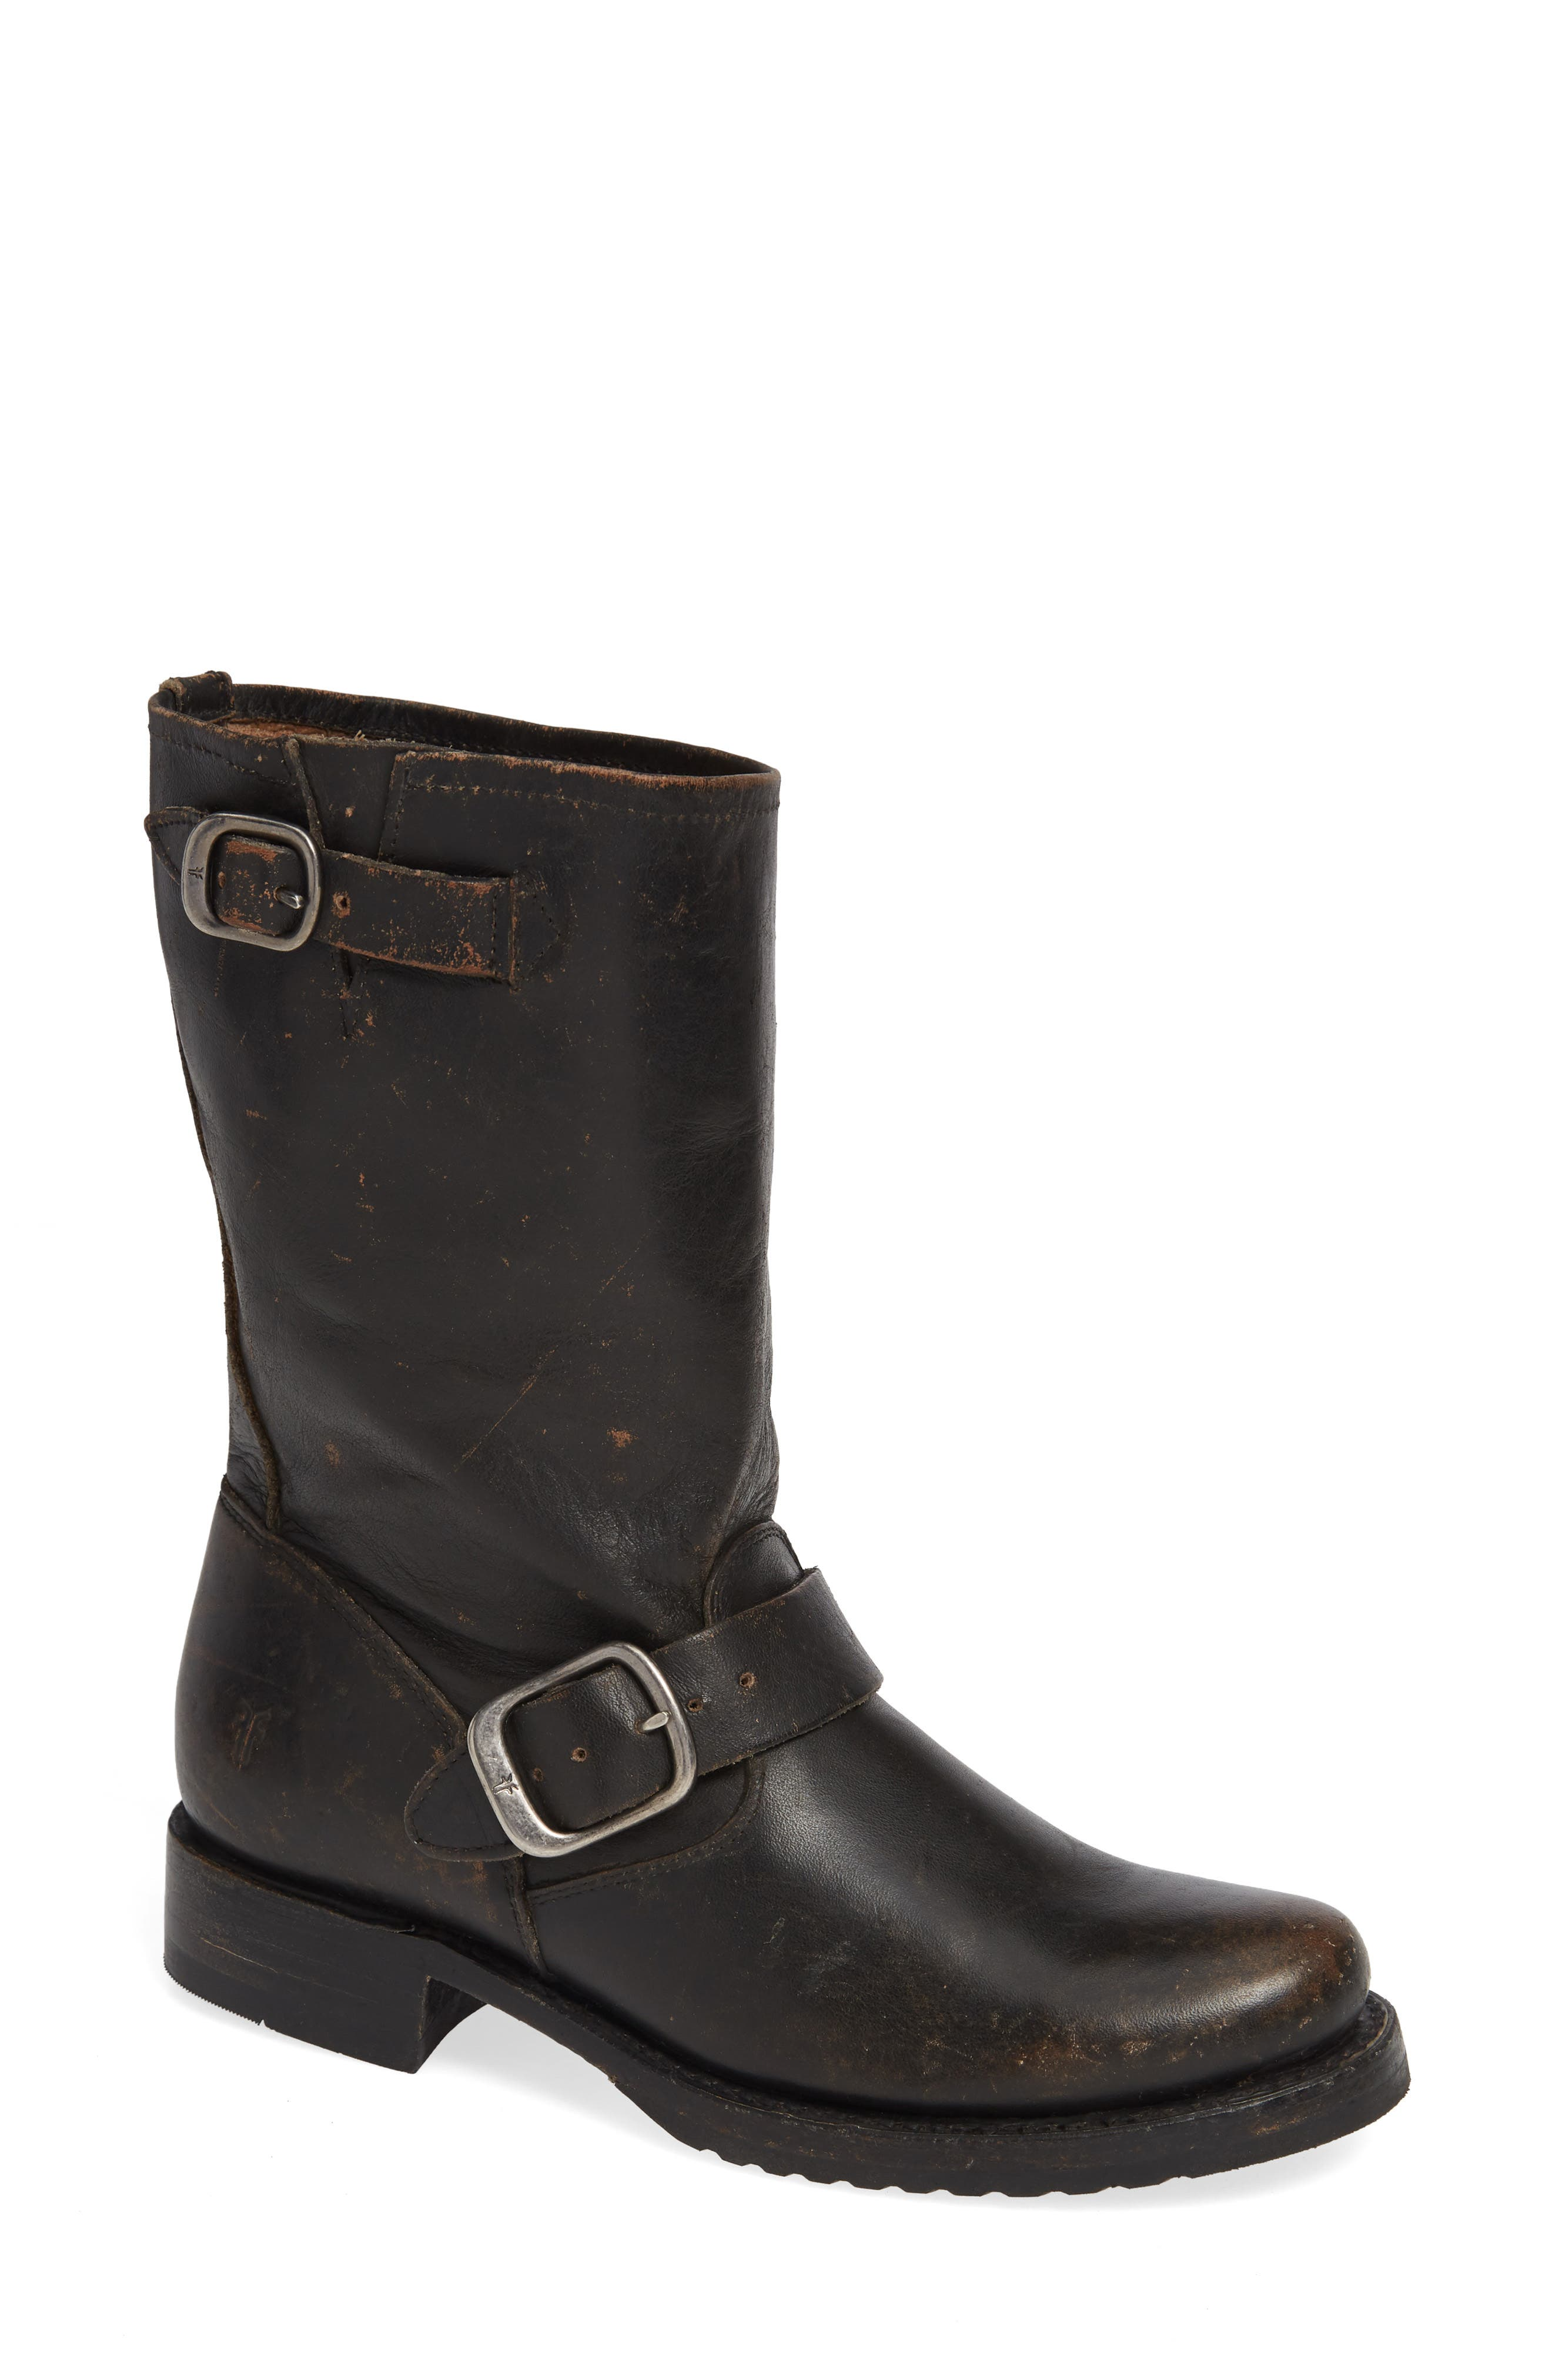 FRYE 'Veronica' Short Boot, Main, color, BLACK BRUSH OFF LEATHER